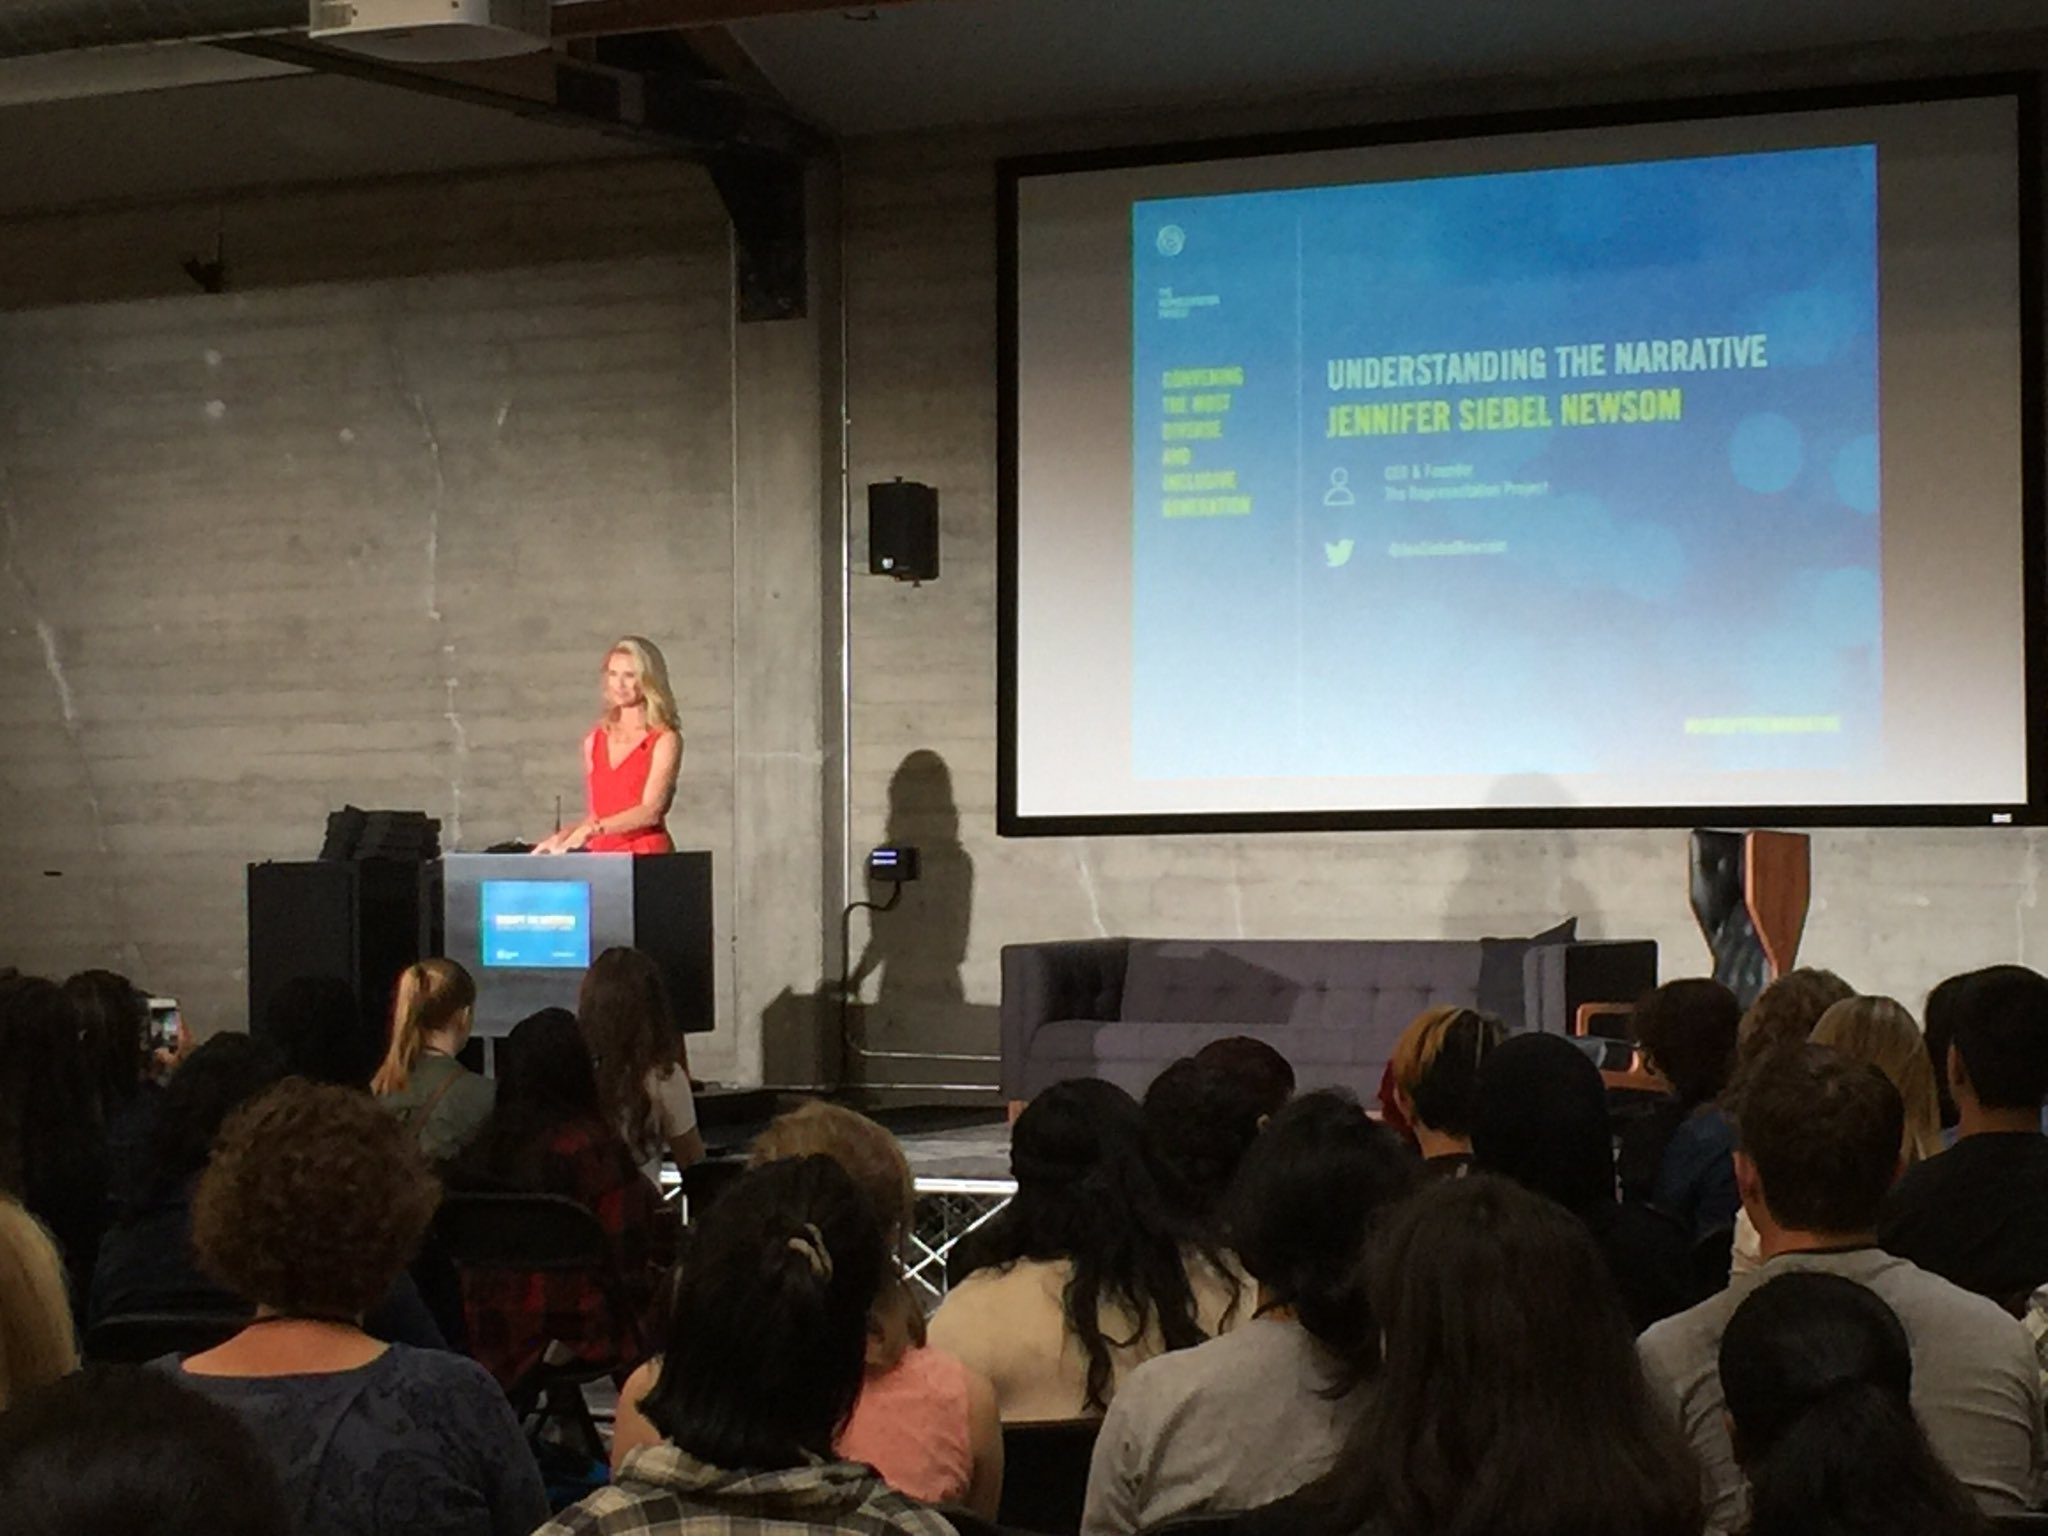 We have the RESPONSIBILITY to speak up & act against gender stereotypes. @JenSiebelNewsom #disruptthenarrative https://t.co/iSzcwilvae